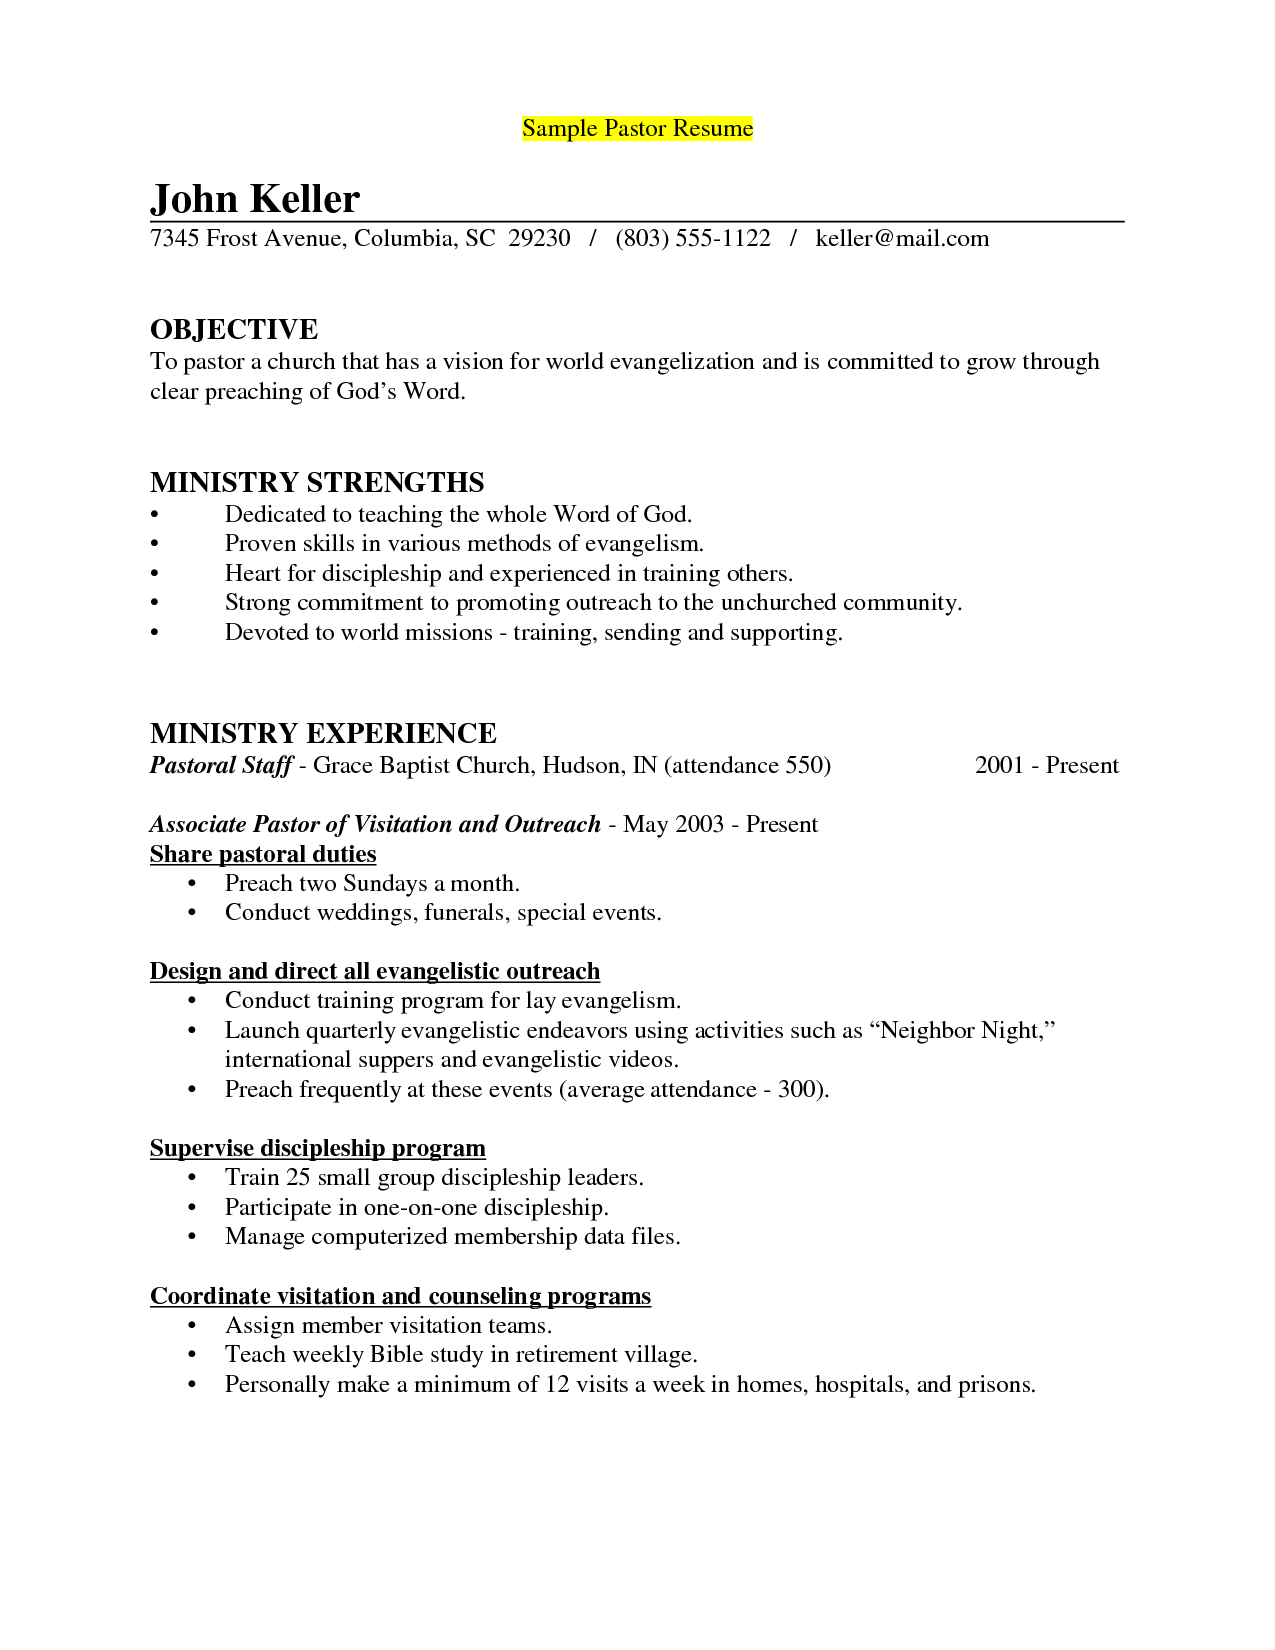 Ministry Resume Templates Sample Of A Pastors Resume  Sample Resumes For Senior Pastors